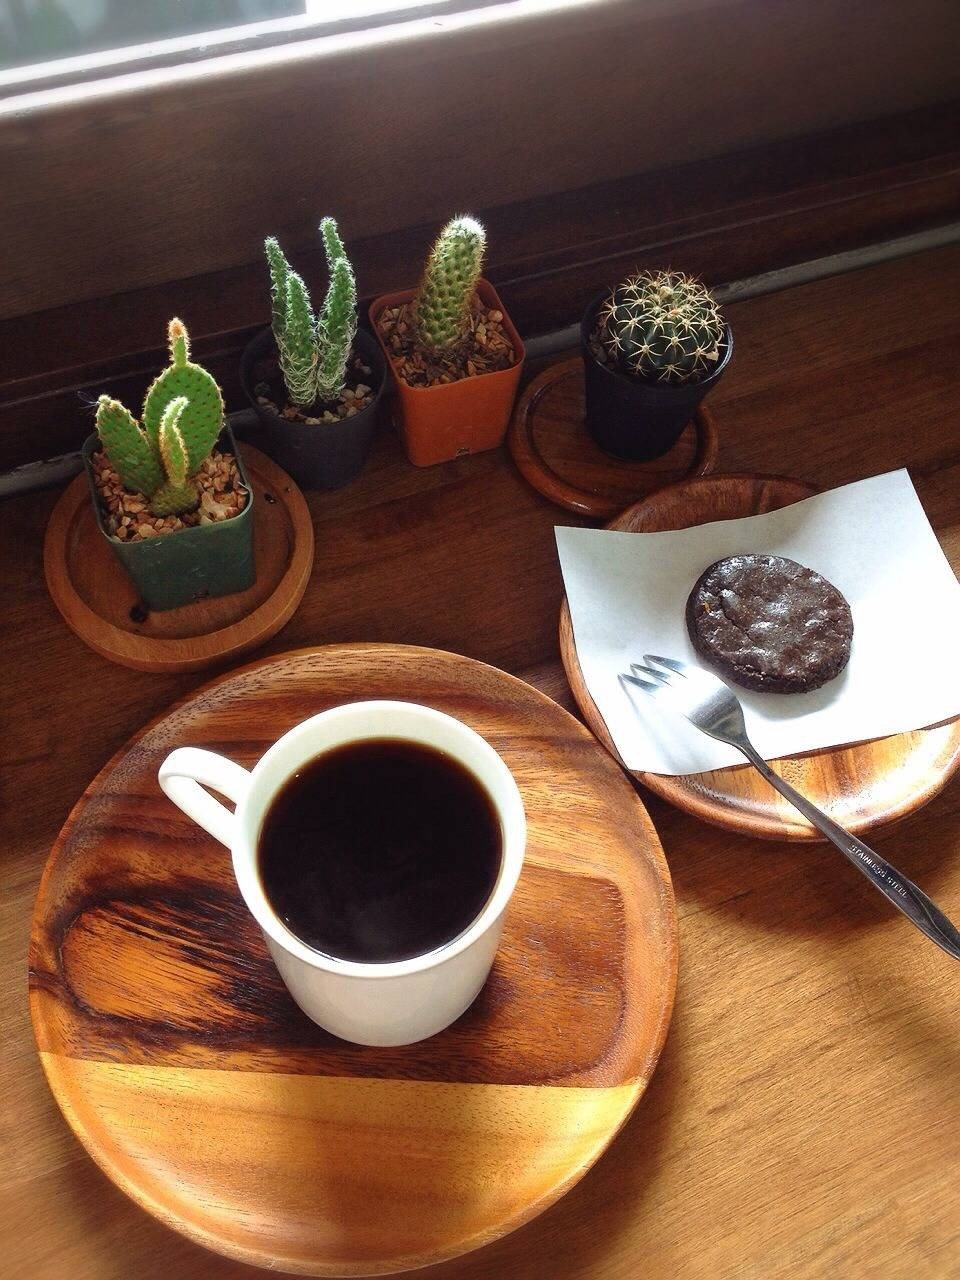 My Coffee Time: Slow Blend + Chocolate Sable